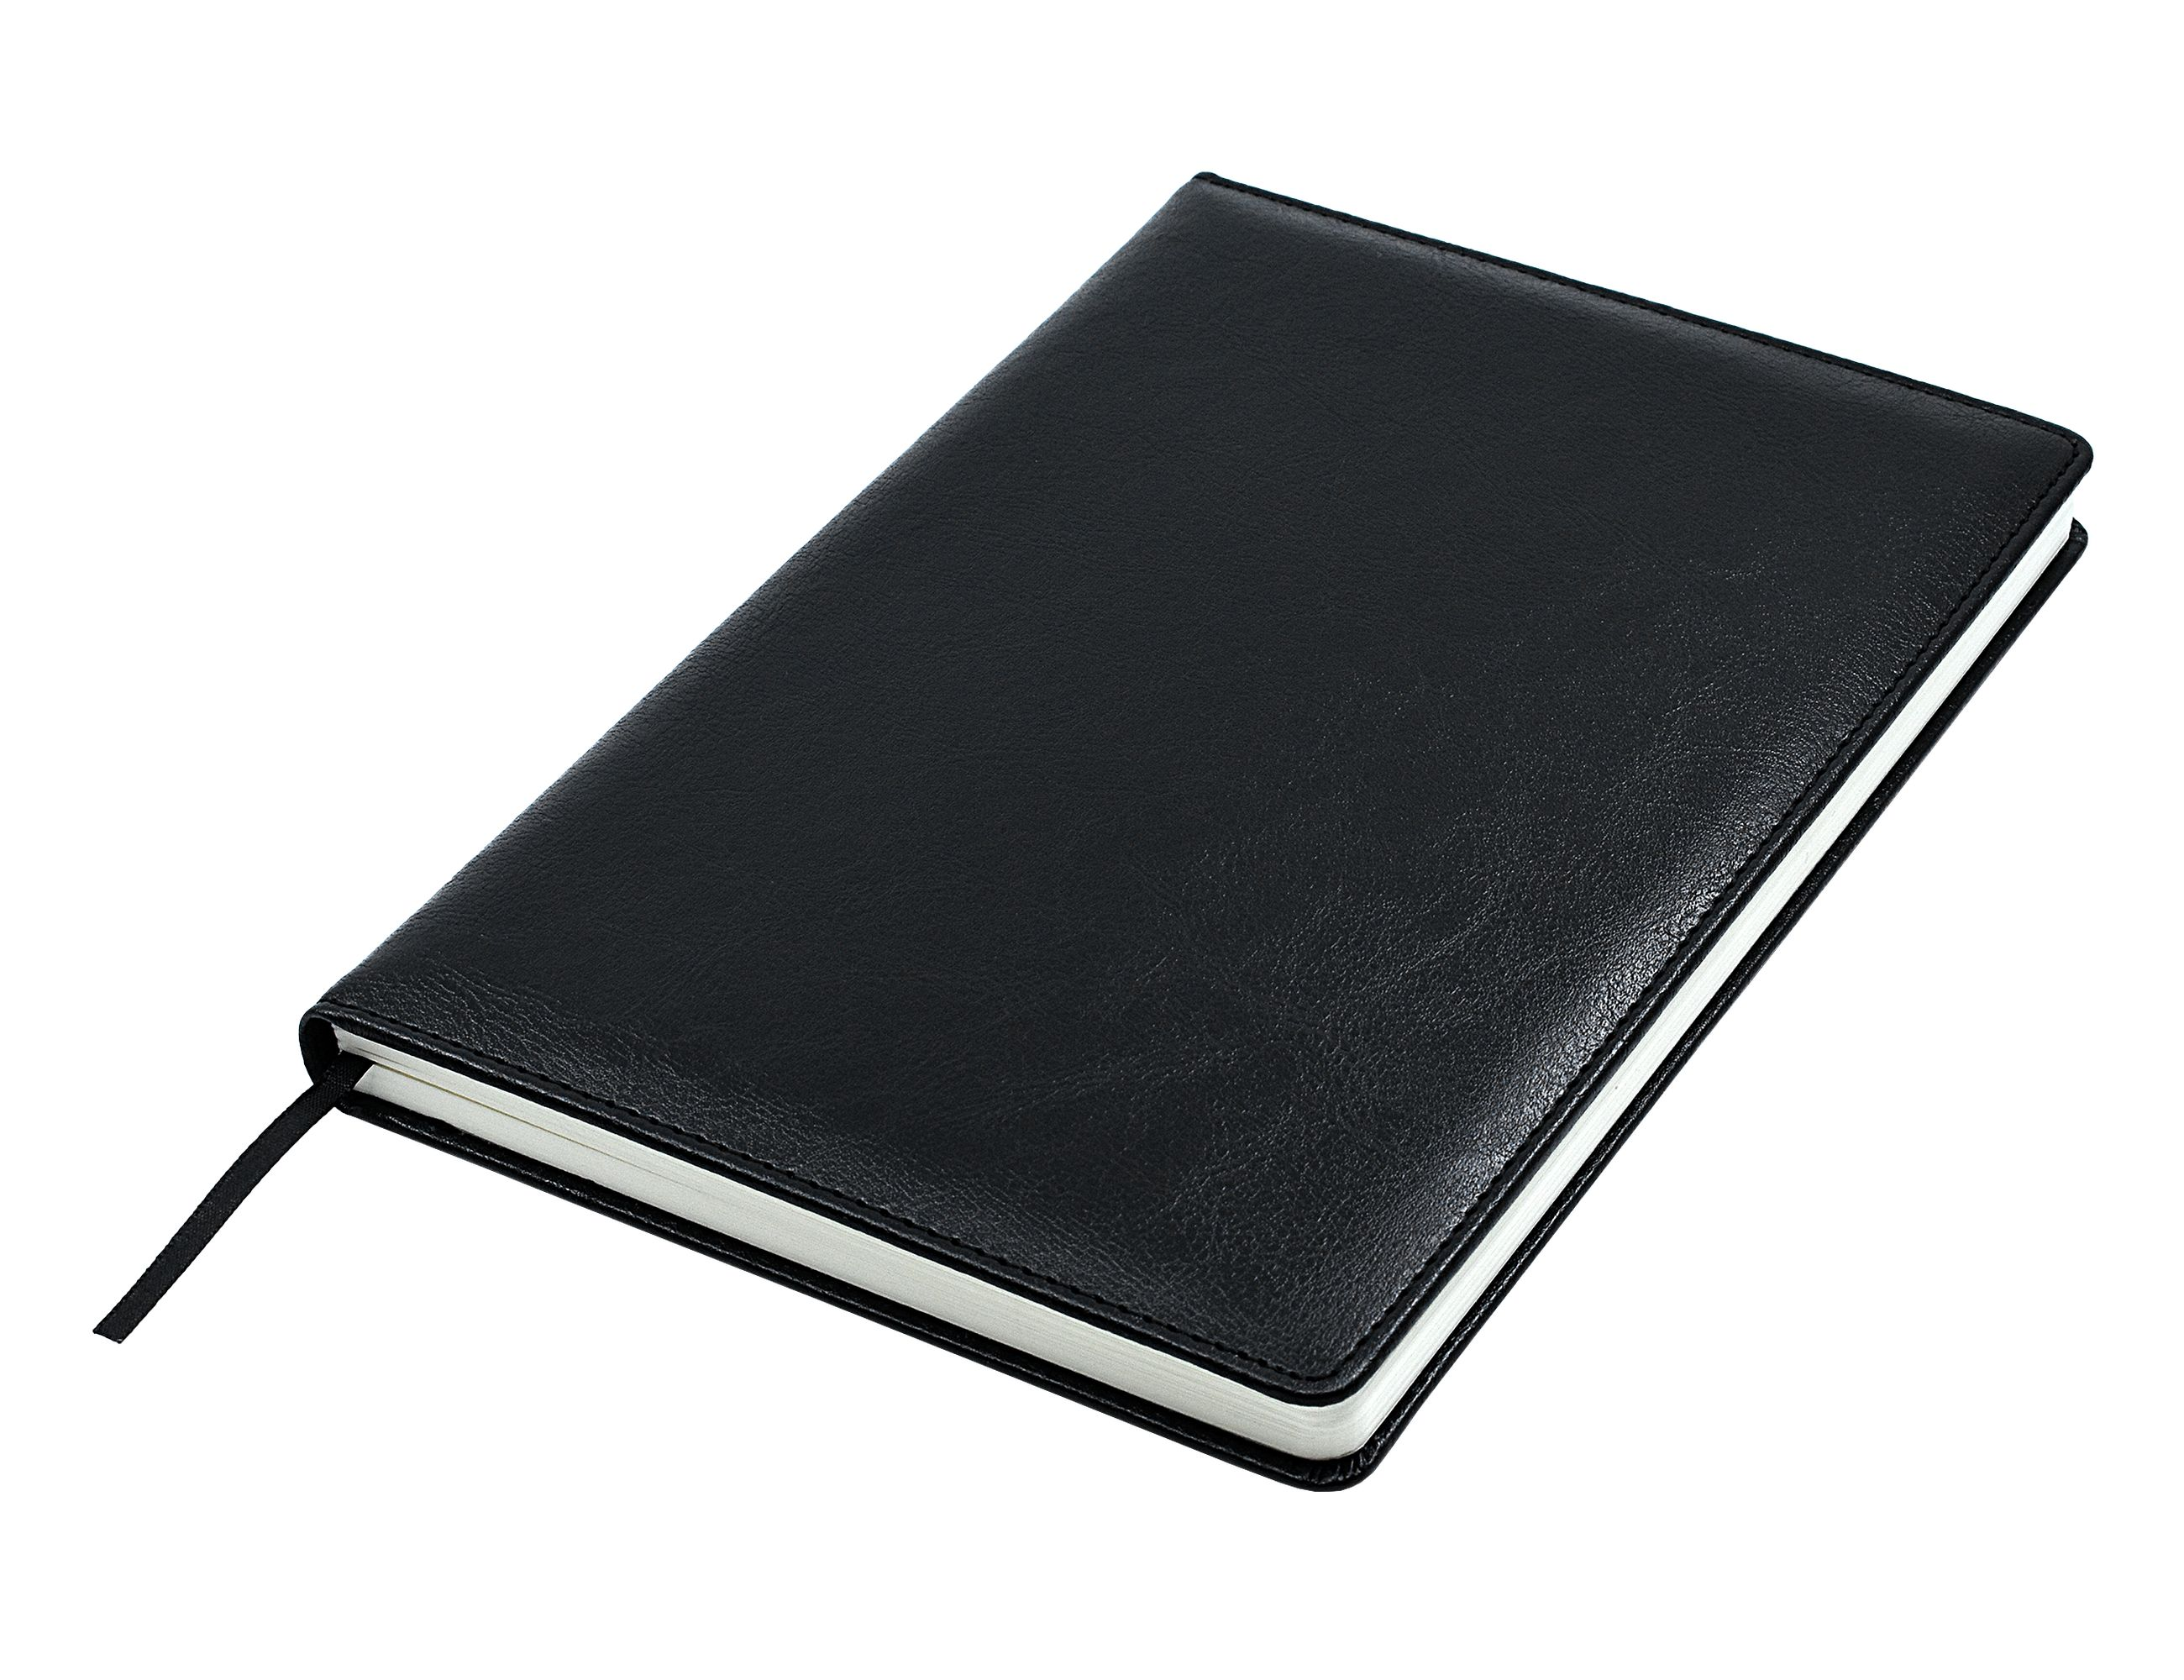 Promotional Product Pinnacle A5 Notebook, Black